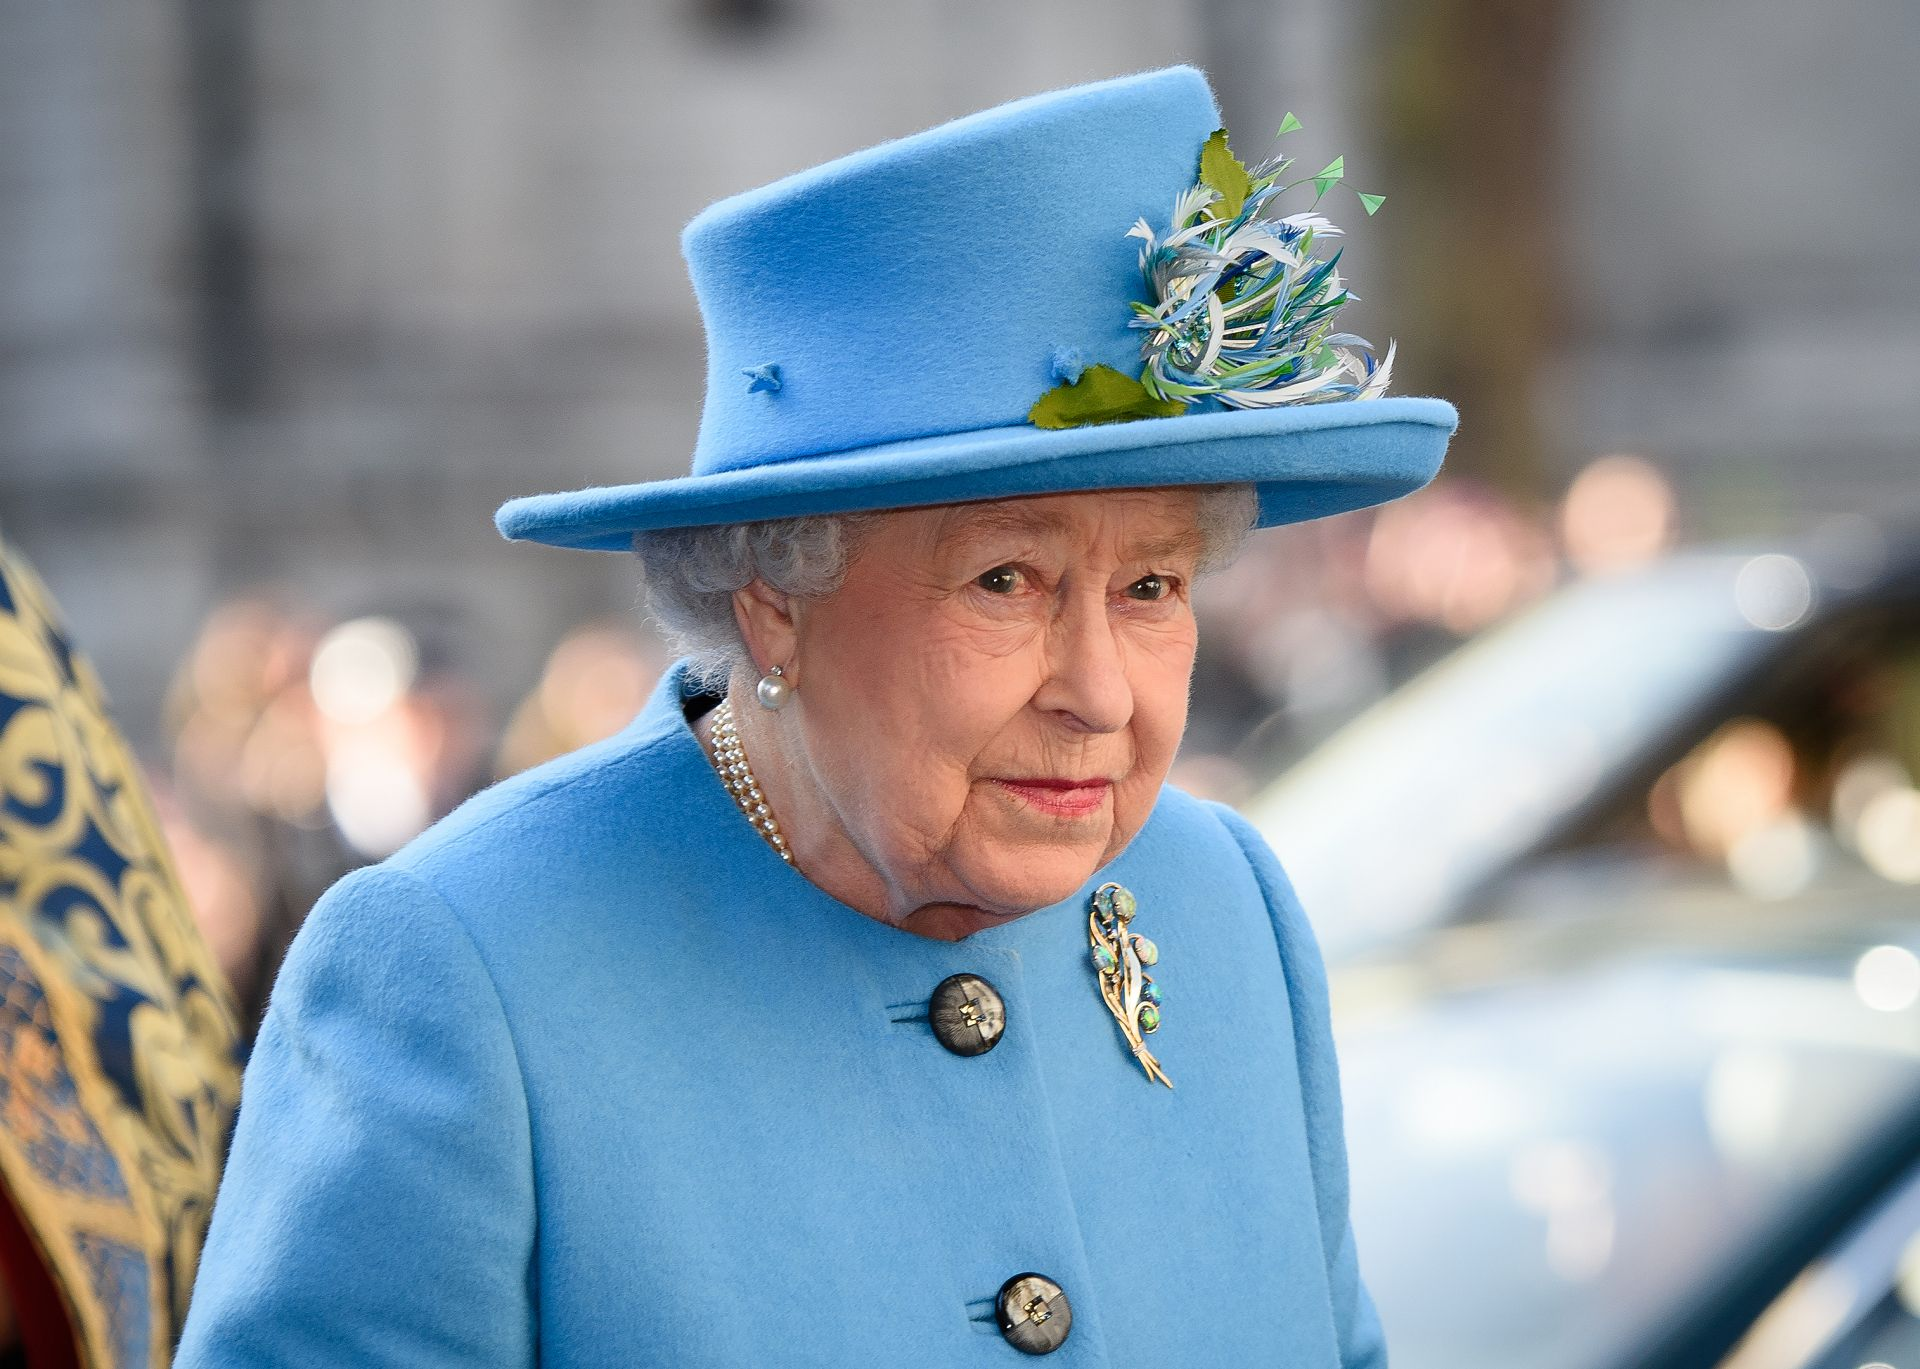 Britain's Queen Elizabeth II arrives to attend a Commonwealth Service at Westminster Abbey in central London on March 14, 2016.Queen Elizabeth II has been Head of the Commonwealth throughout her 60 year reign. Organised by the Royal Commonwealth Society, the Service is the largest annual inter-faith gathering in the United Kingdom.  / AFP PHOTO / LEON NEAL